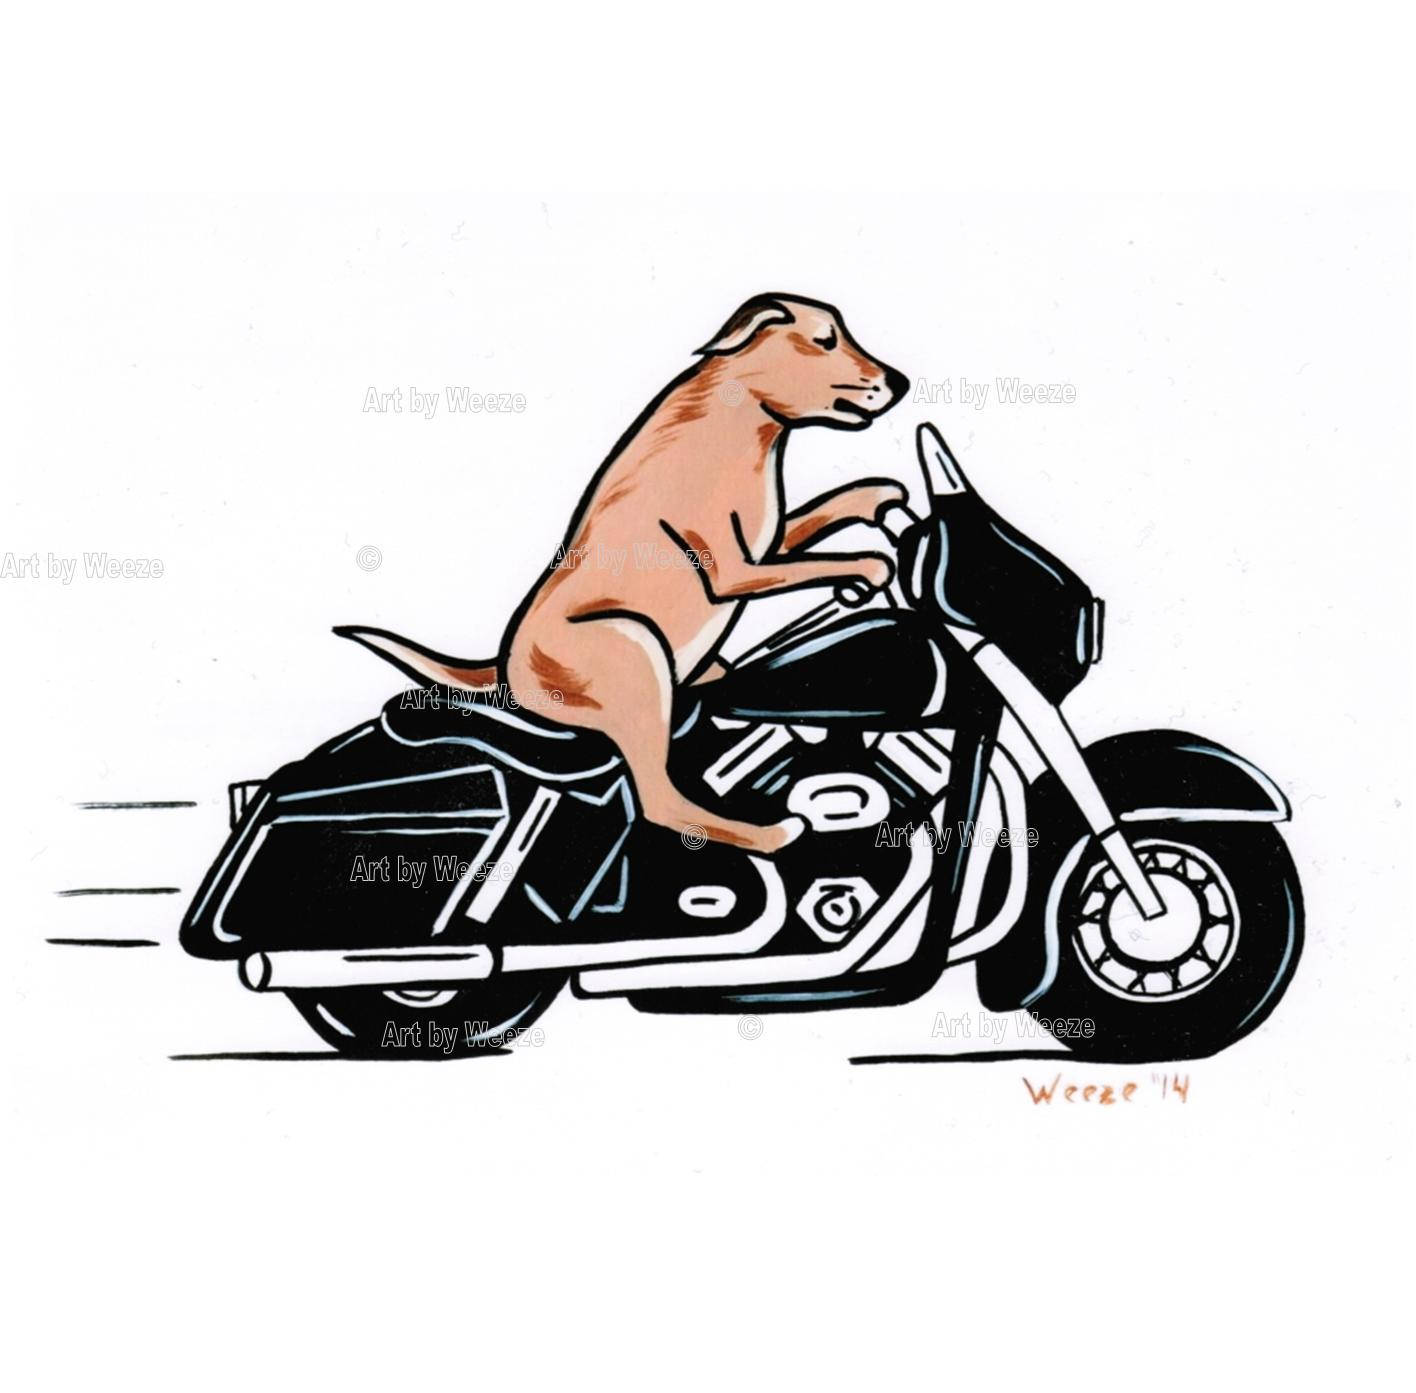 Harley Davidson clipart cartoon Urn Etsy Dog Dog Harley